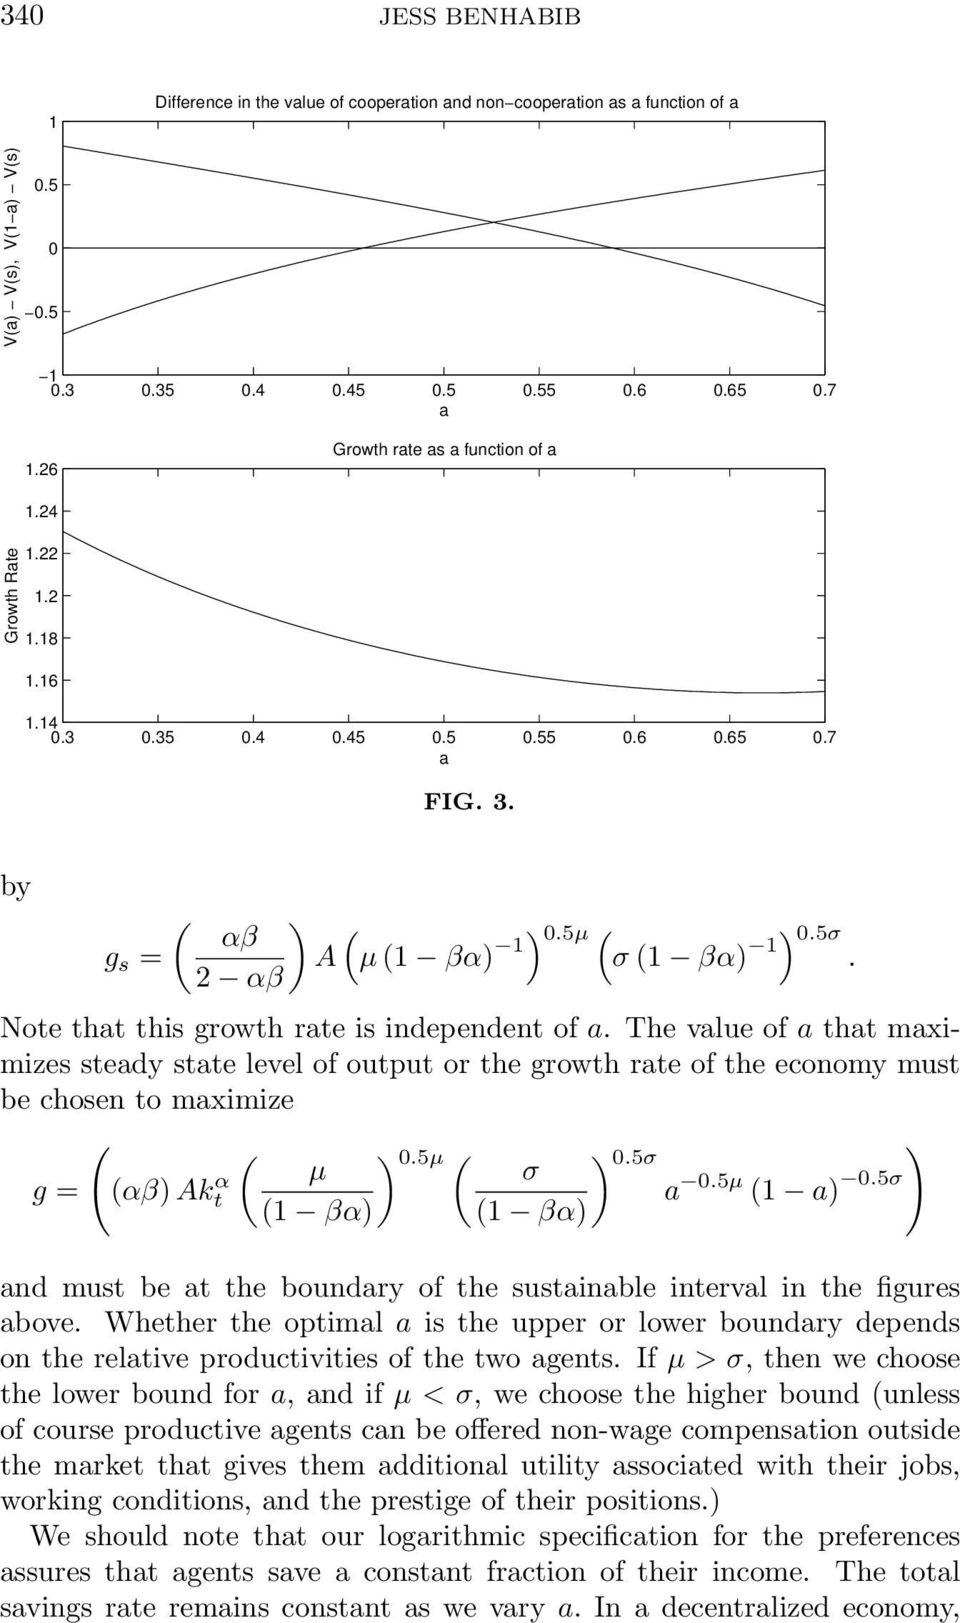 The vlue of tht mximizes stedy stte level of output or the growth rte of the economy must be chosen to mximize 0.5 0.5σ g = αβ Akt α σ 0.5 1 0.